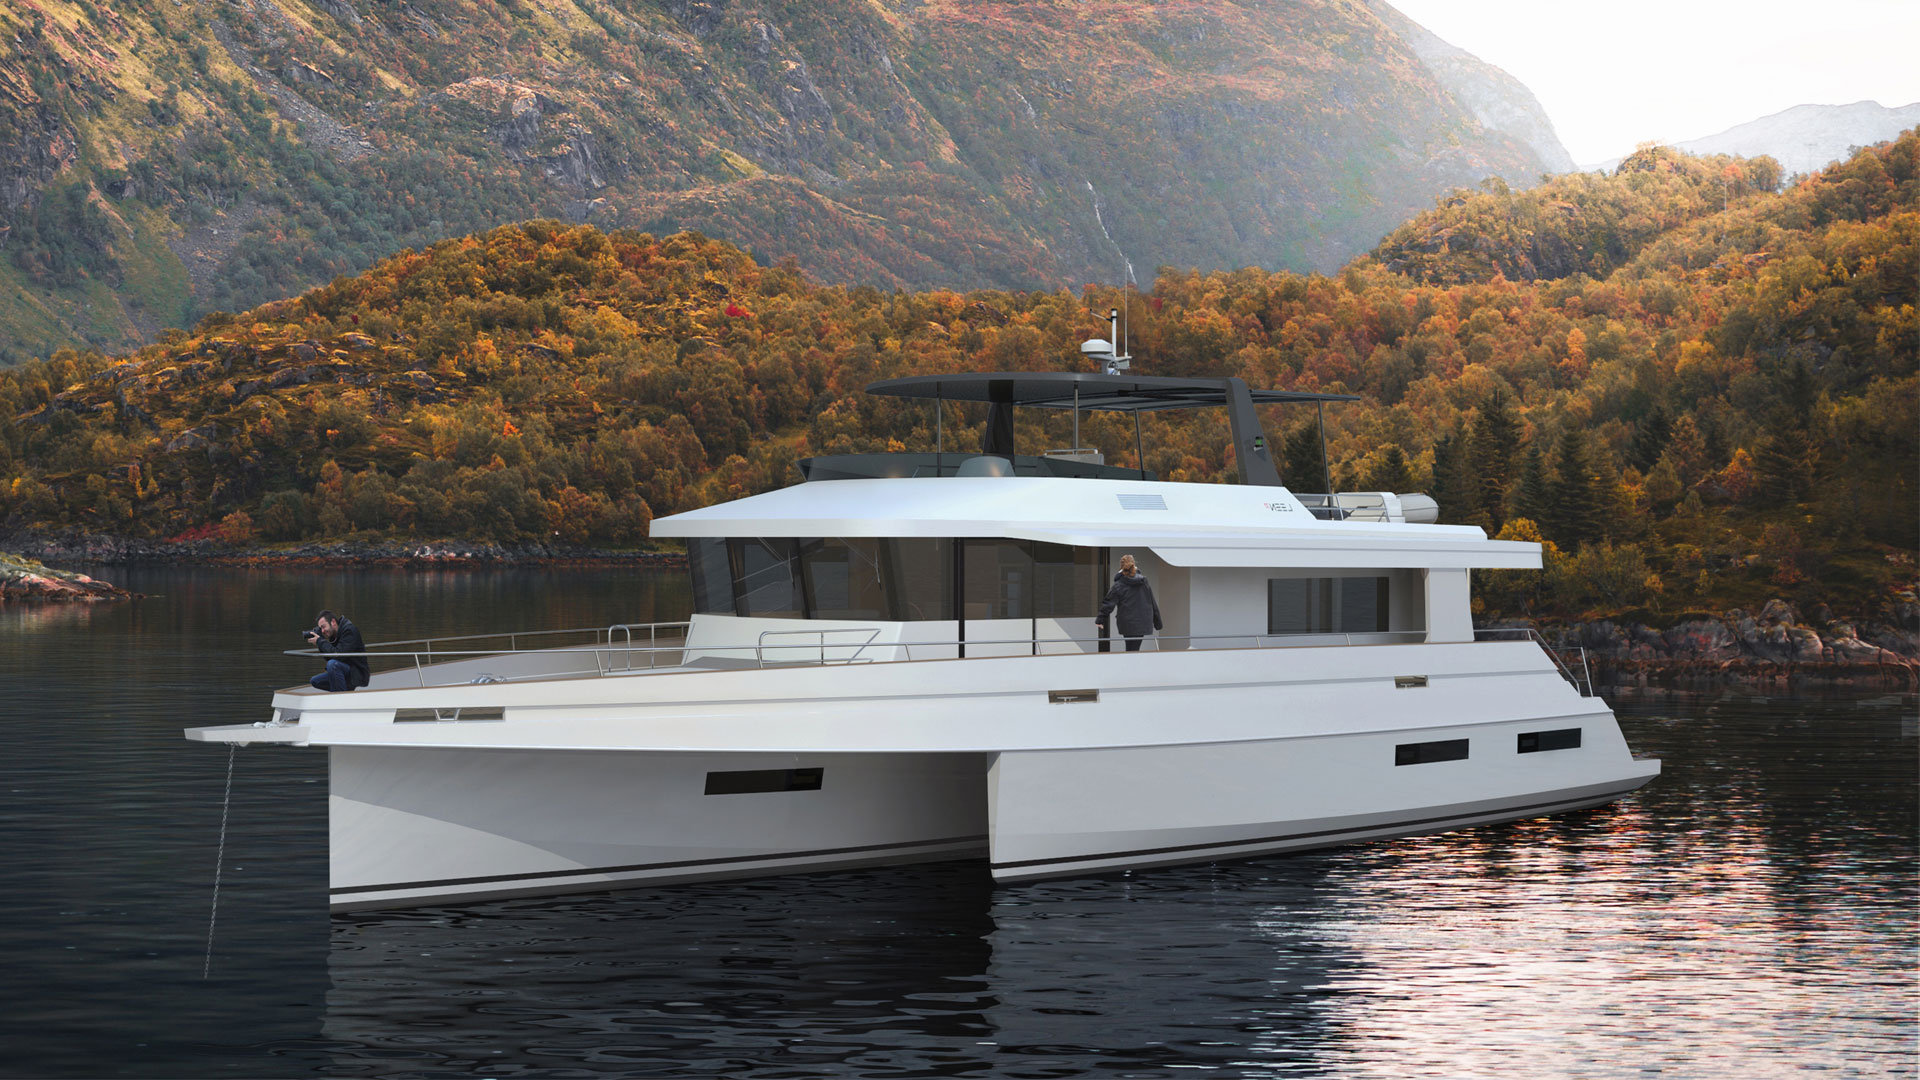 LEEN-TRIMARANS, the trimaran cruiser specialist and AUSTAL, the global passenger boat manufacturer, are using the same technical solution.